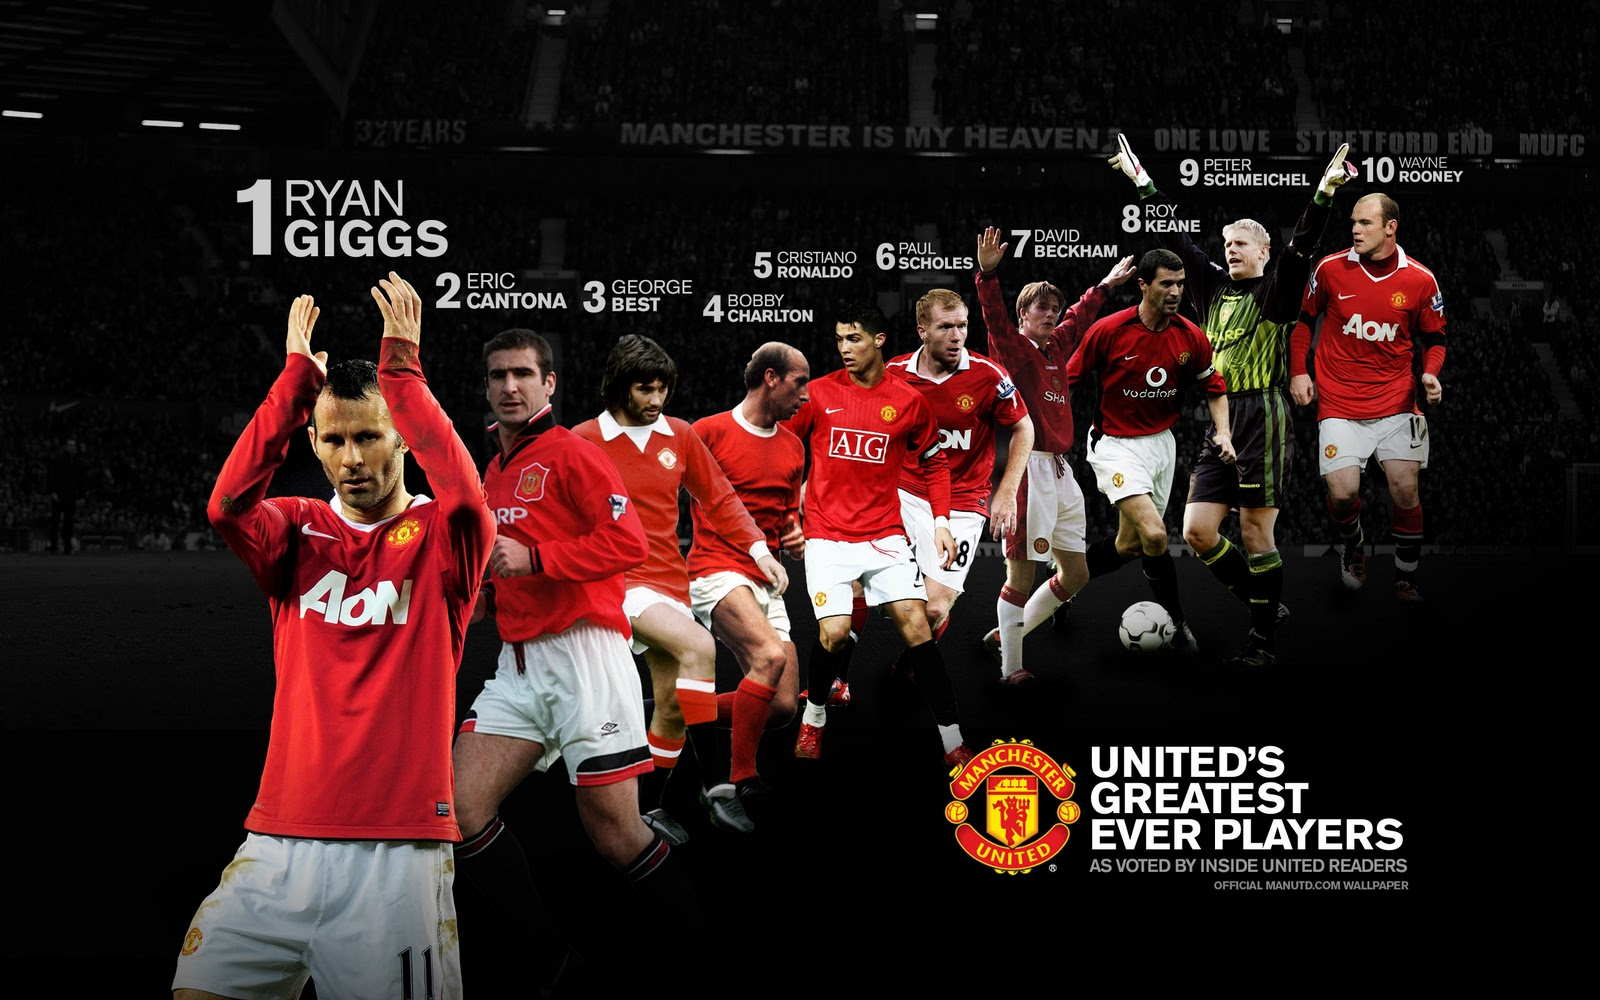 All Wallpapers Manchester United Wallpapers hd 2013 1600x1000